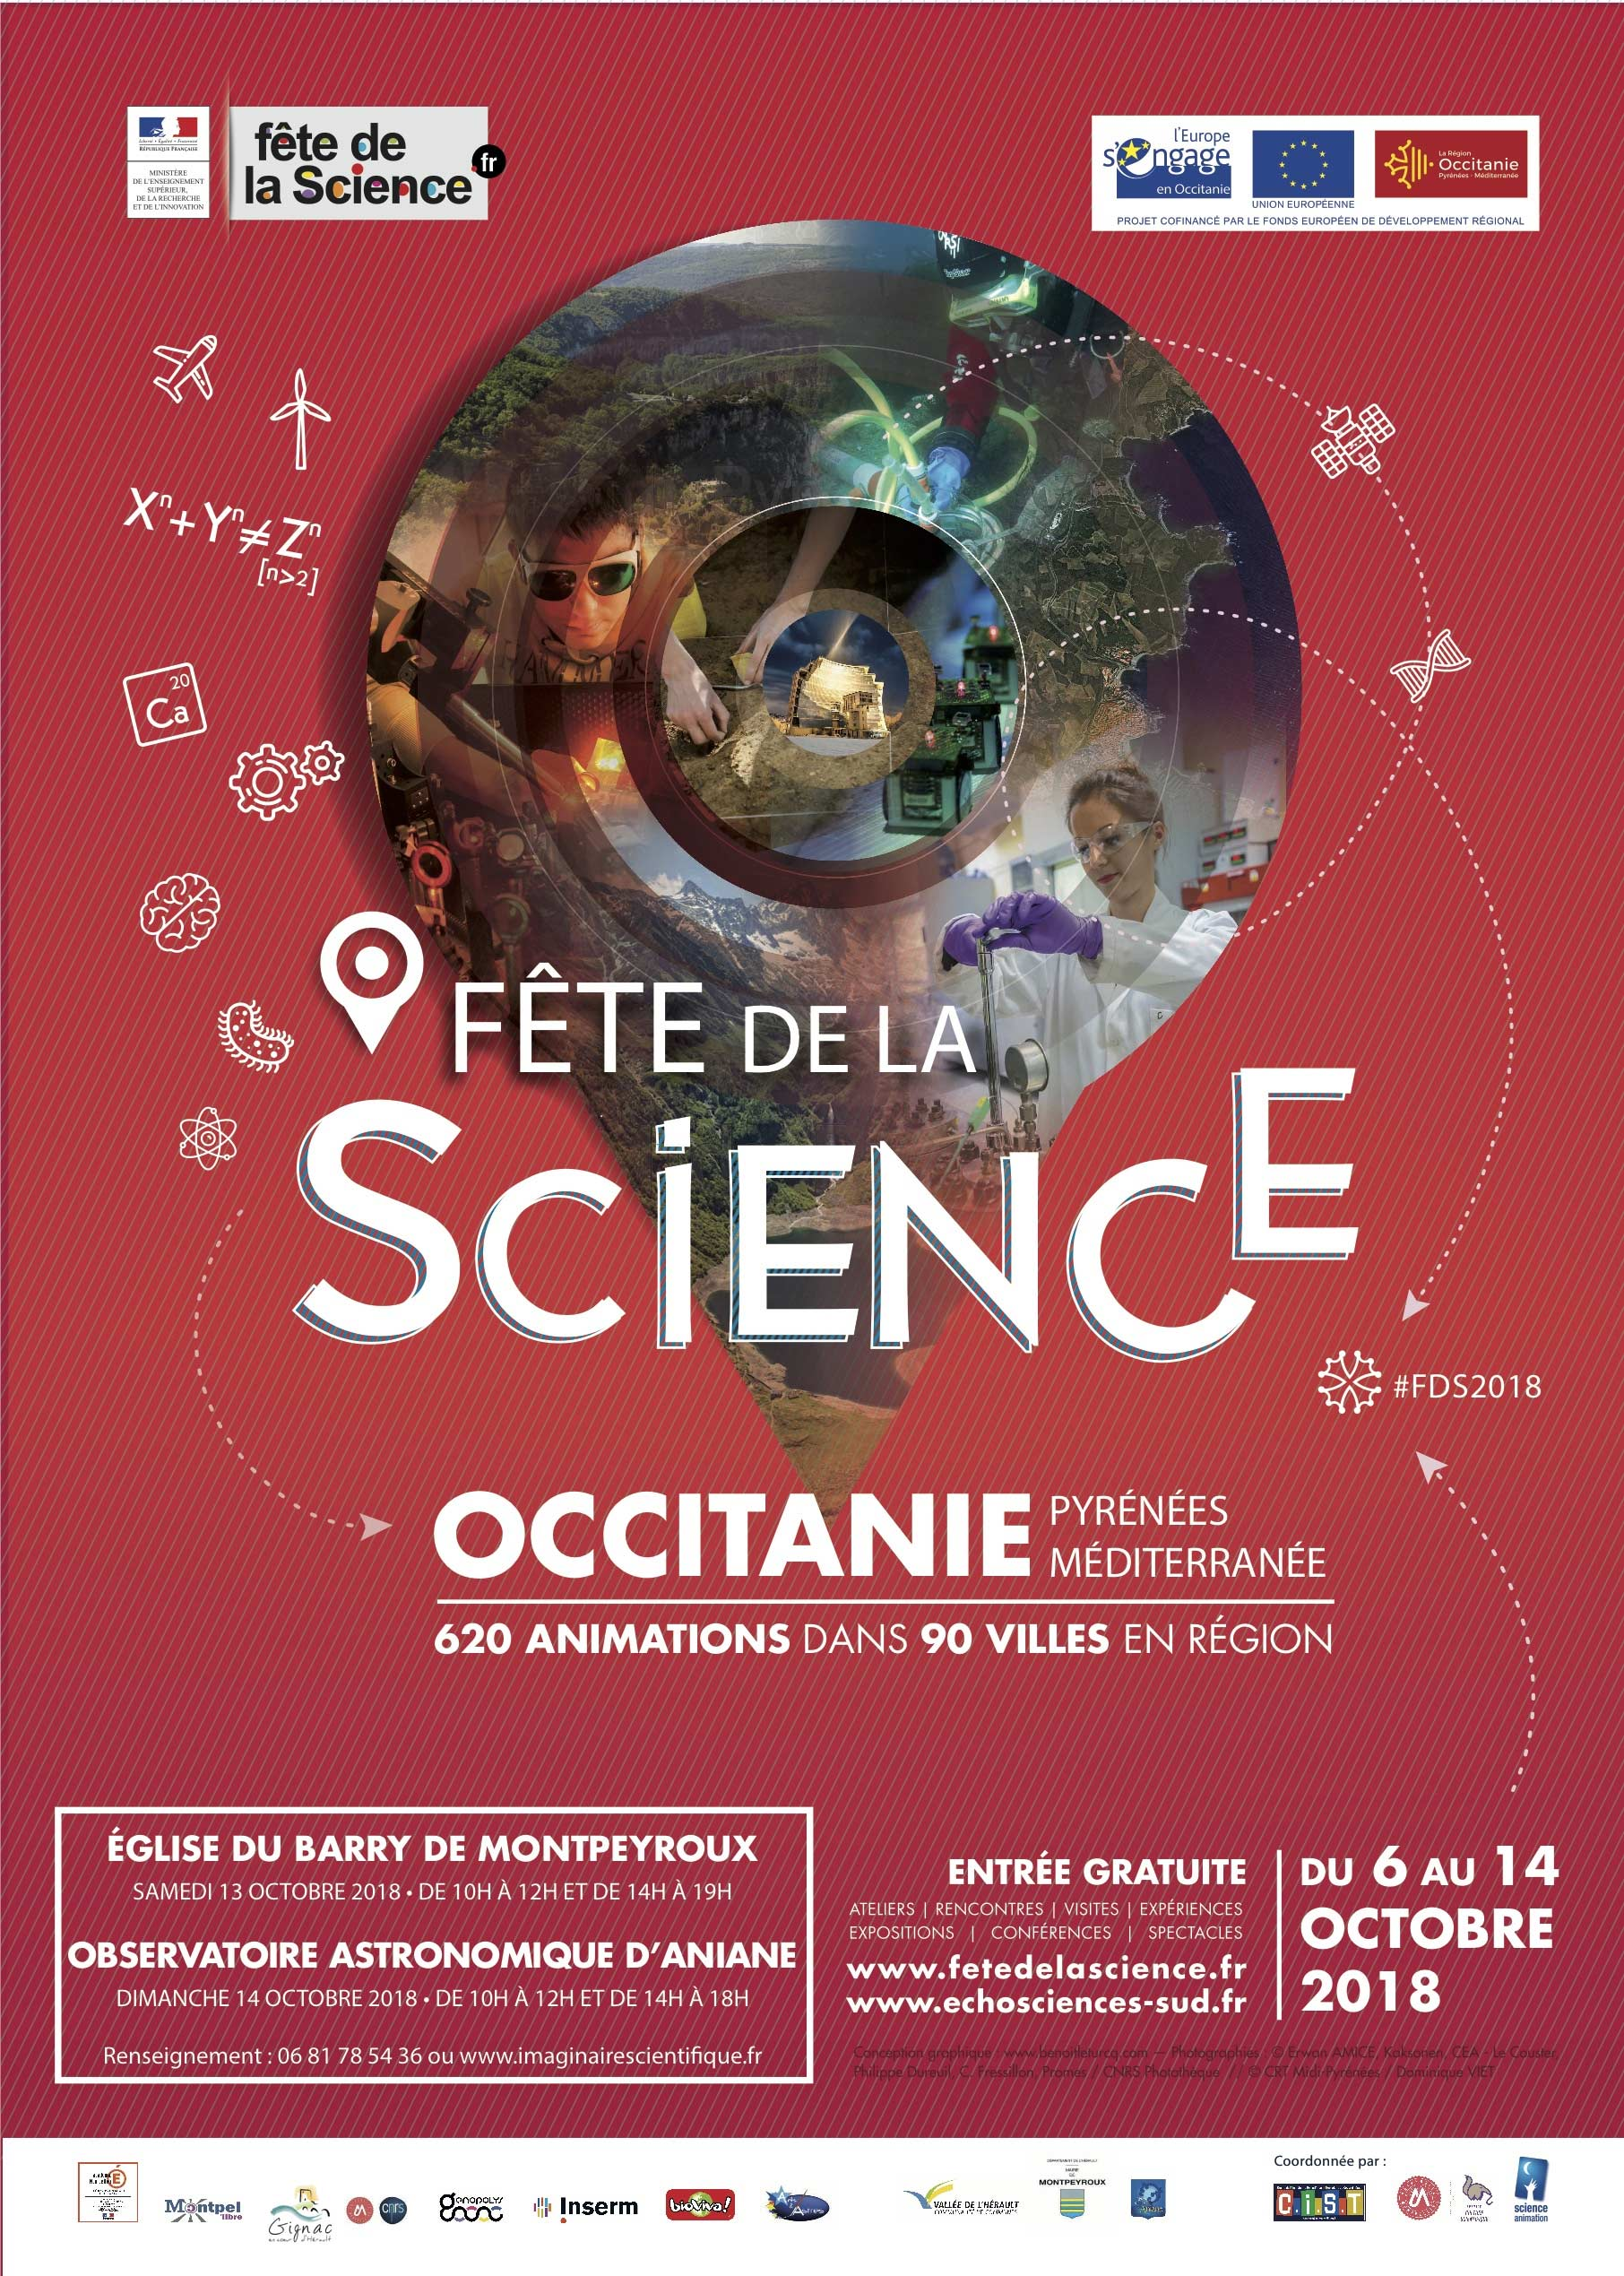 Fete_science_vallee_herault_2018_recto